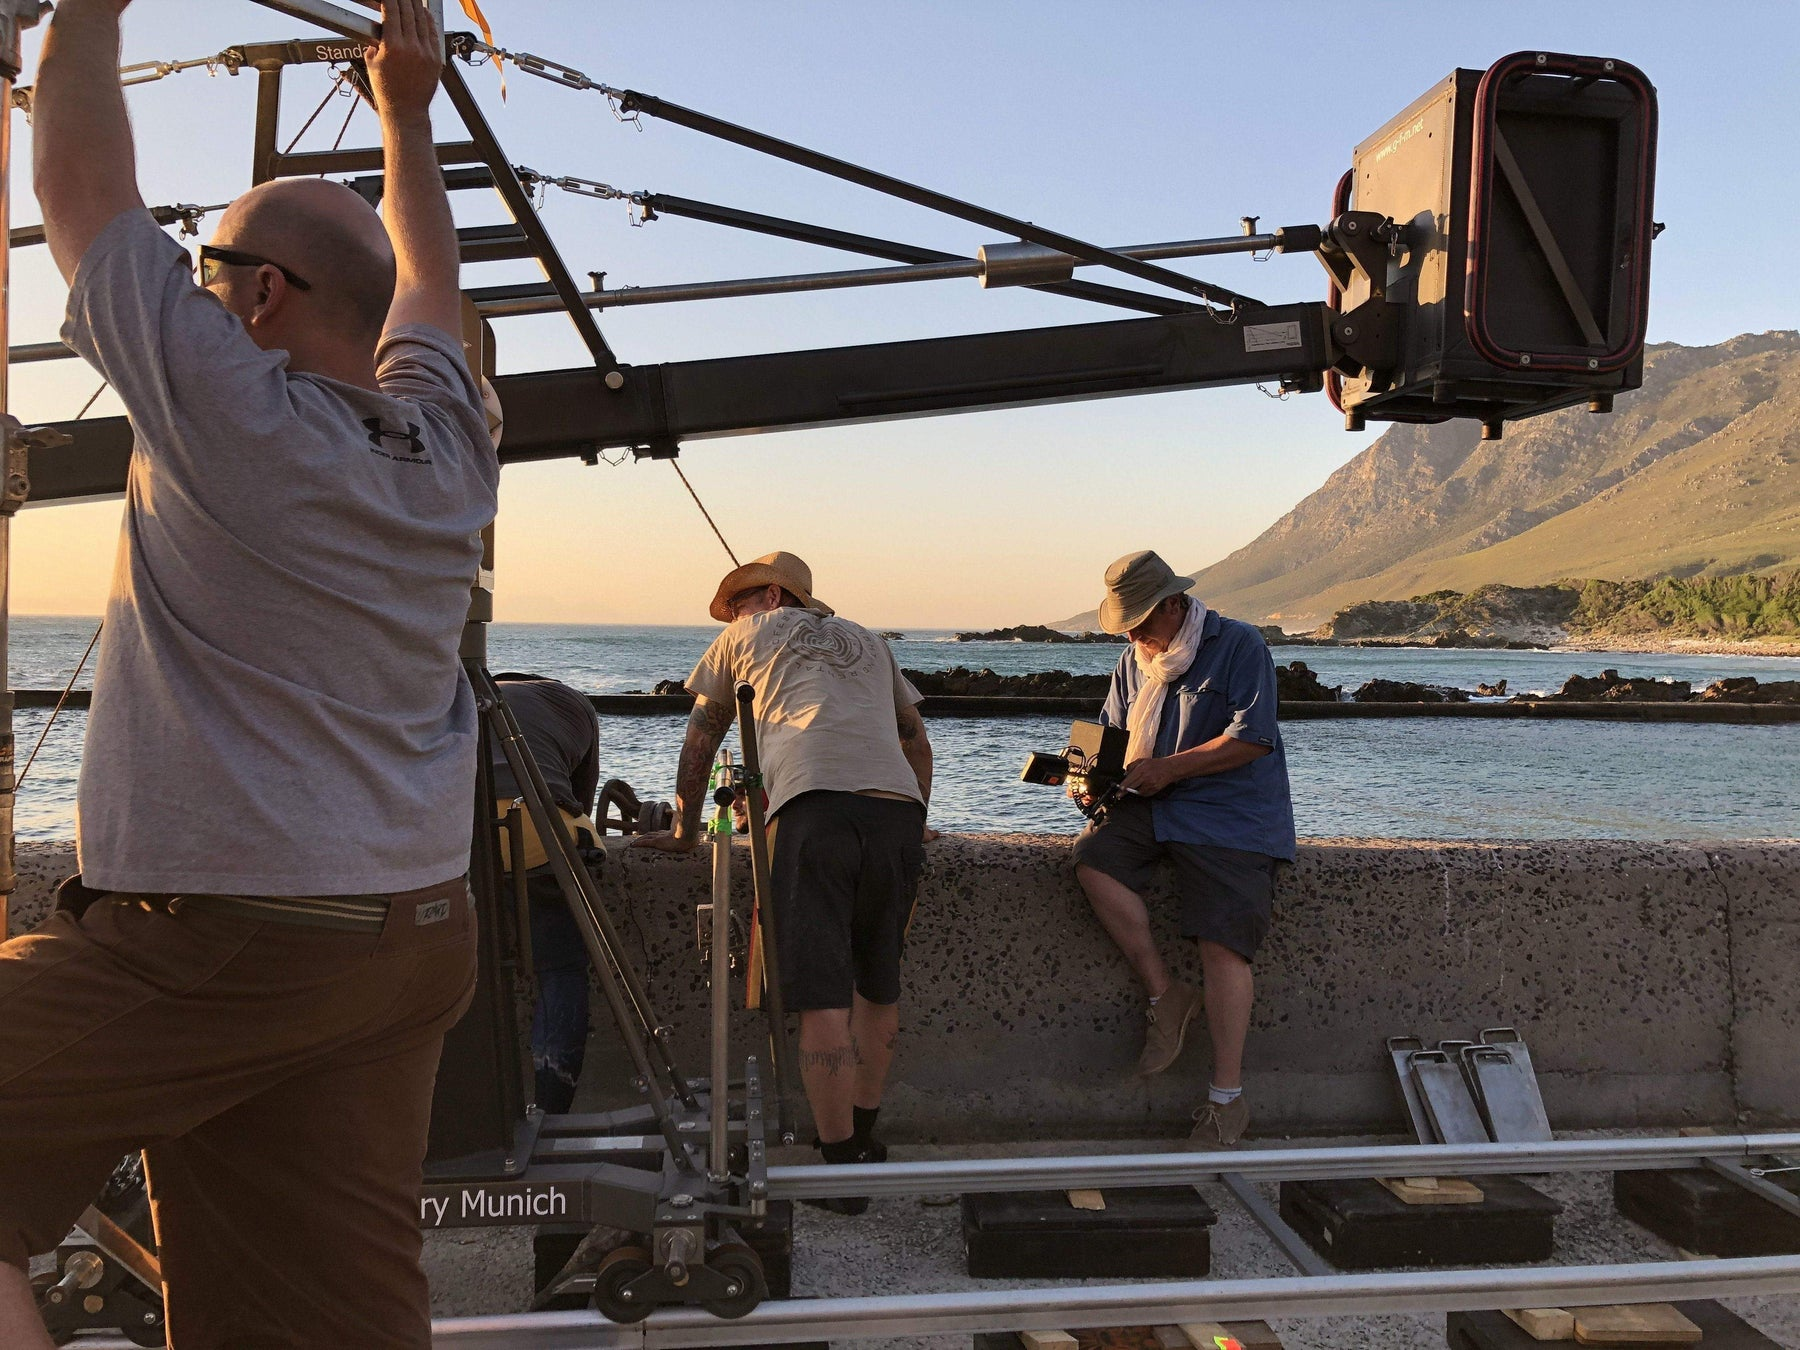 Booming Film Industry Returns to Cape Town